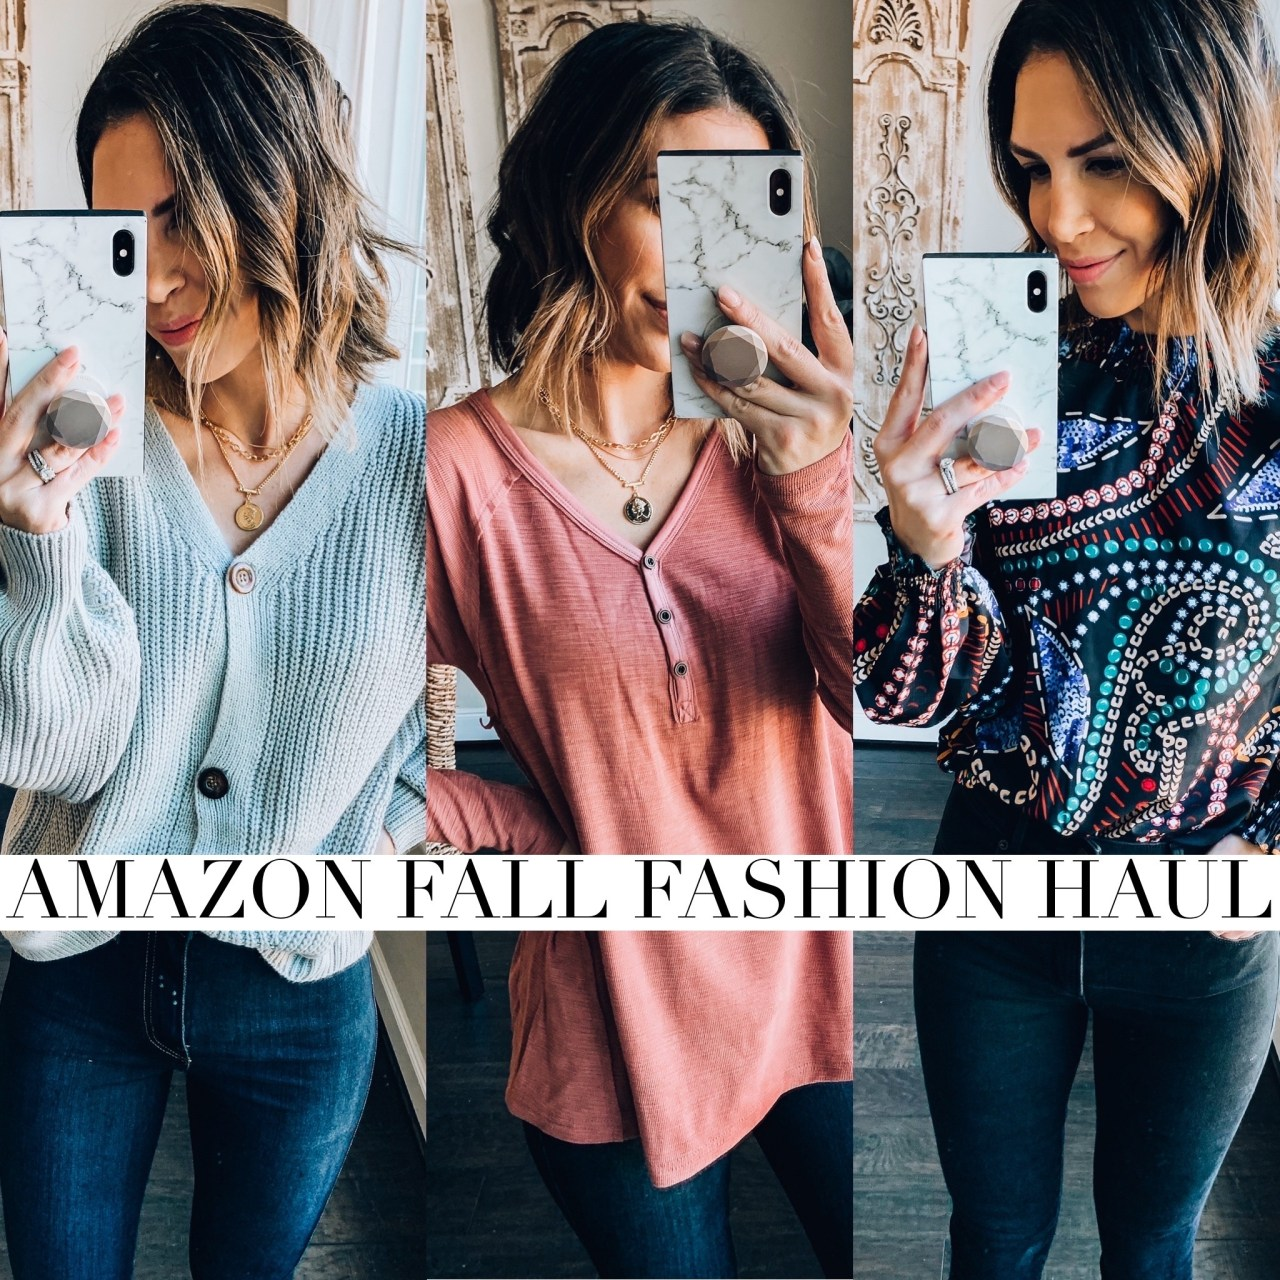 Amazon Fall Fashion Haul: October 2019